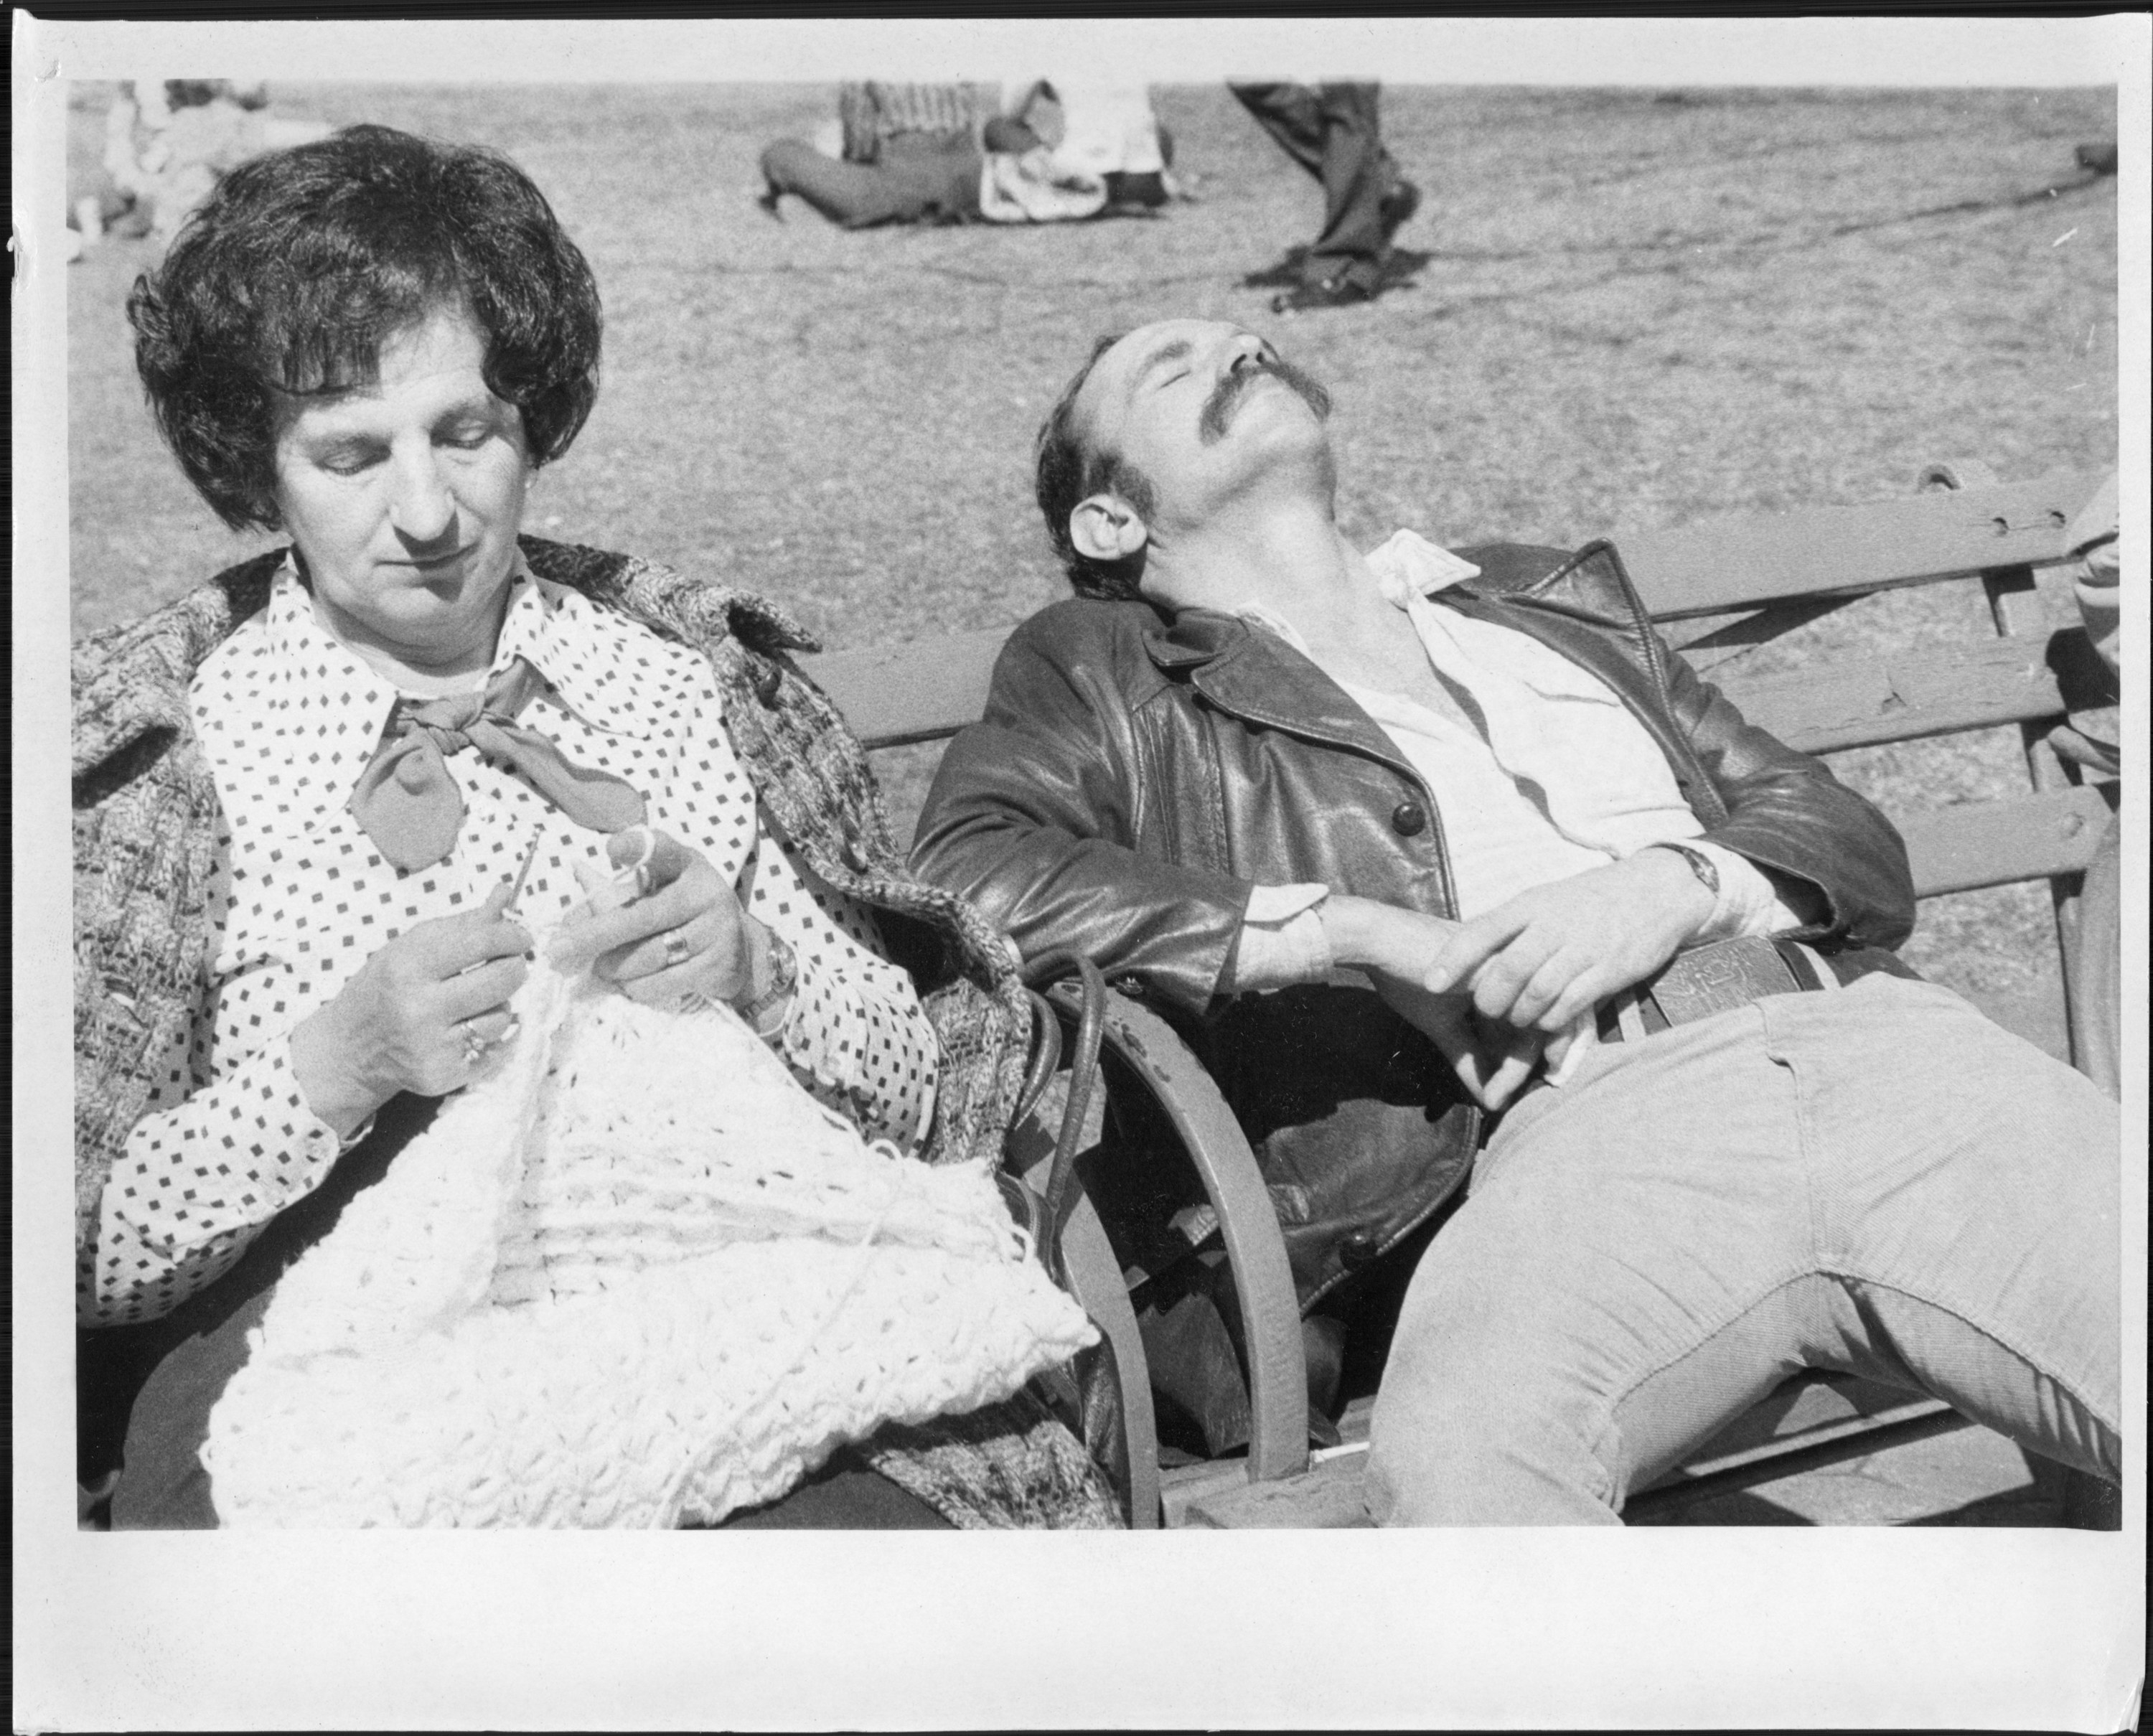 A woman knits on a park bench while a man naps next to her